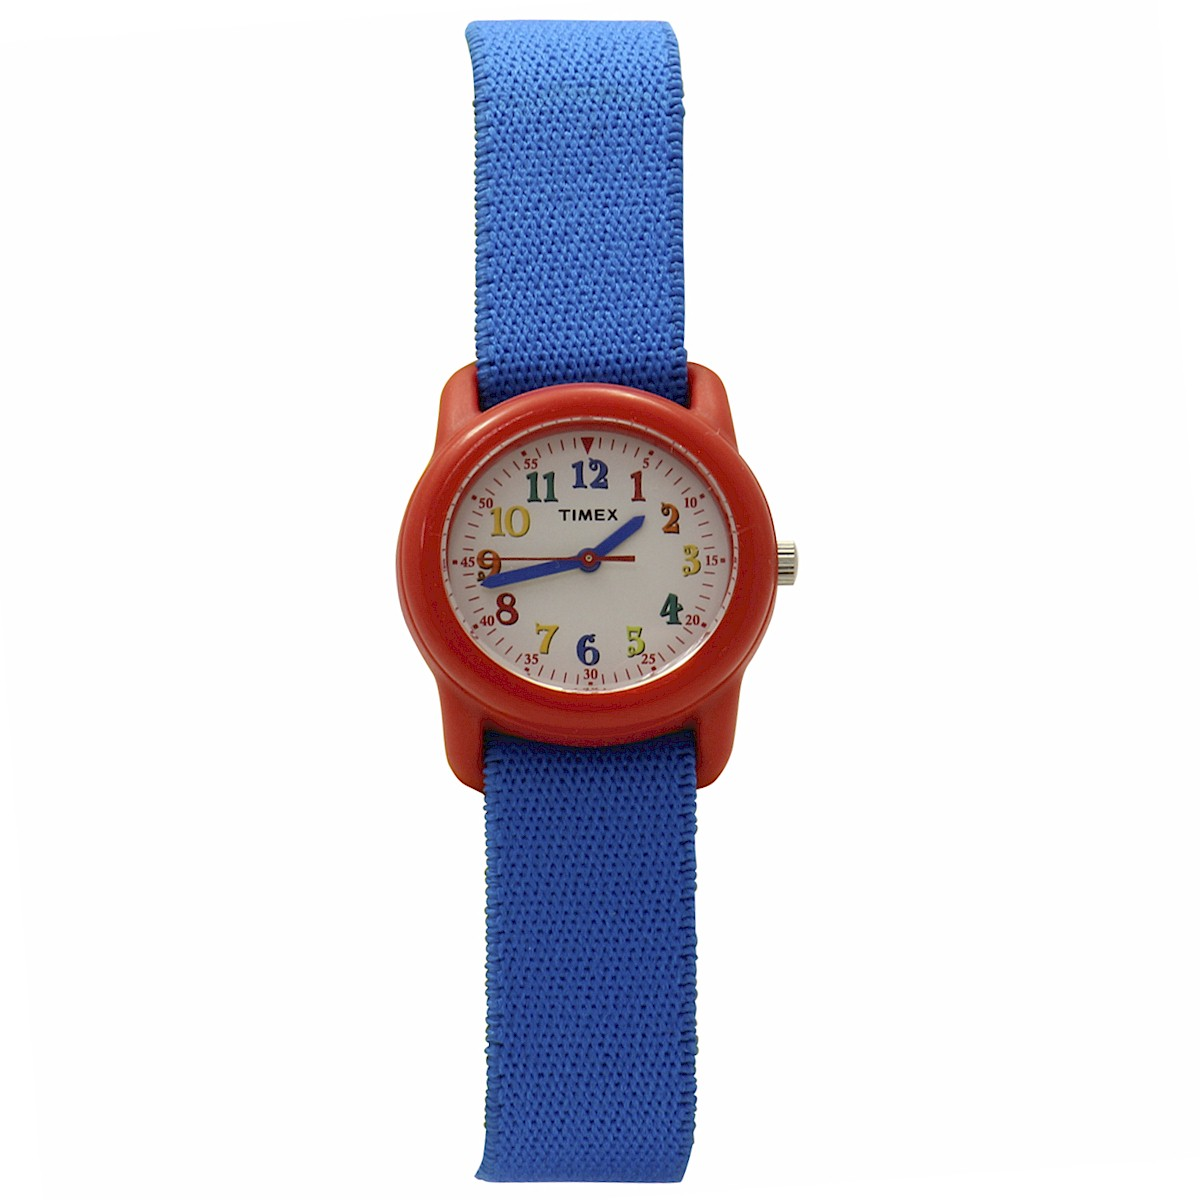 Image of Timex Kid s TW7B995009J Blue Red Adjustable Analog Sport Watch